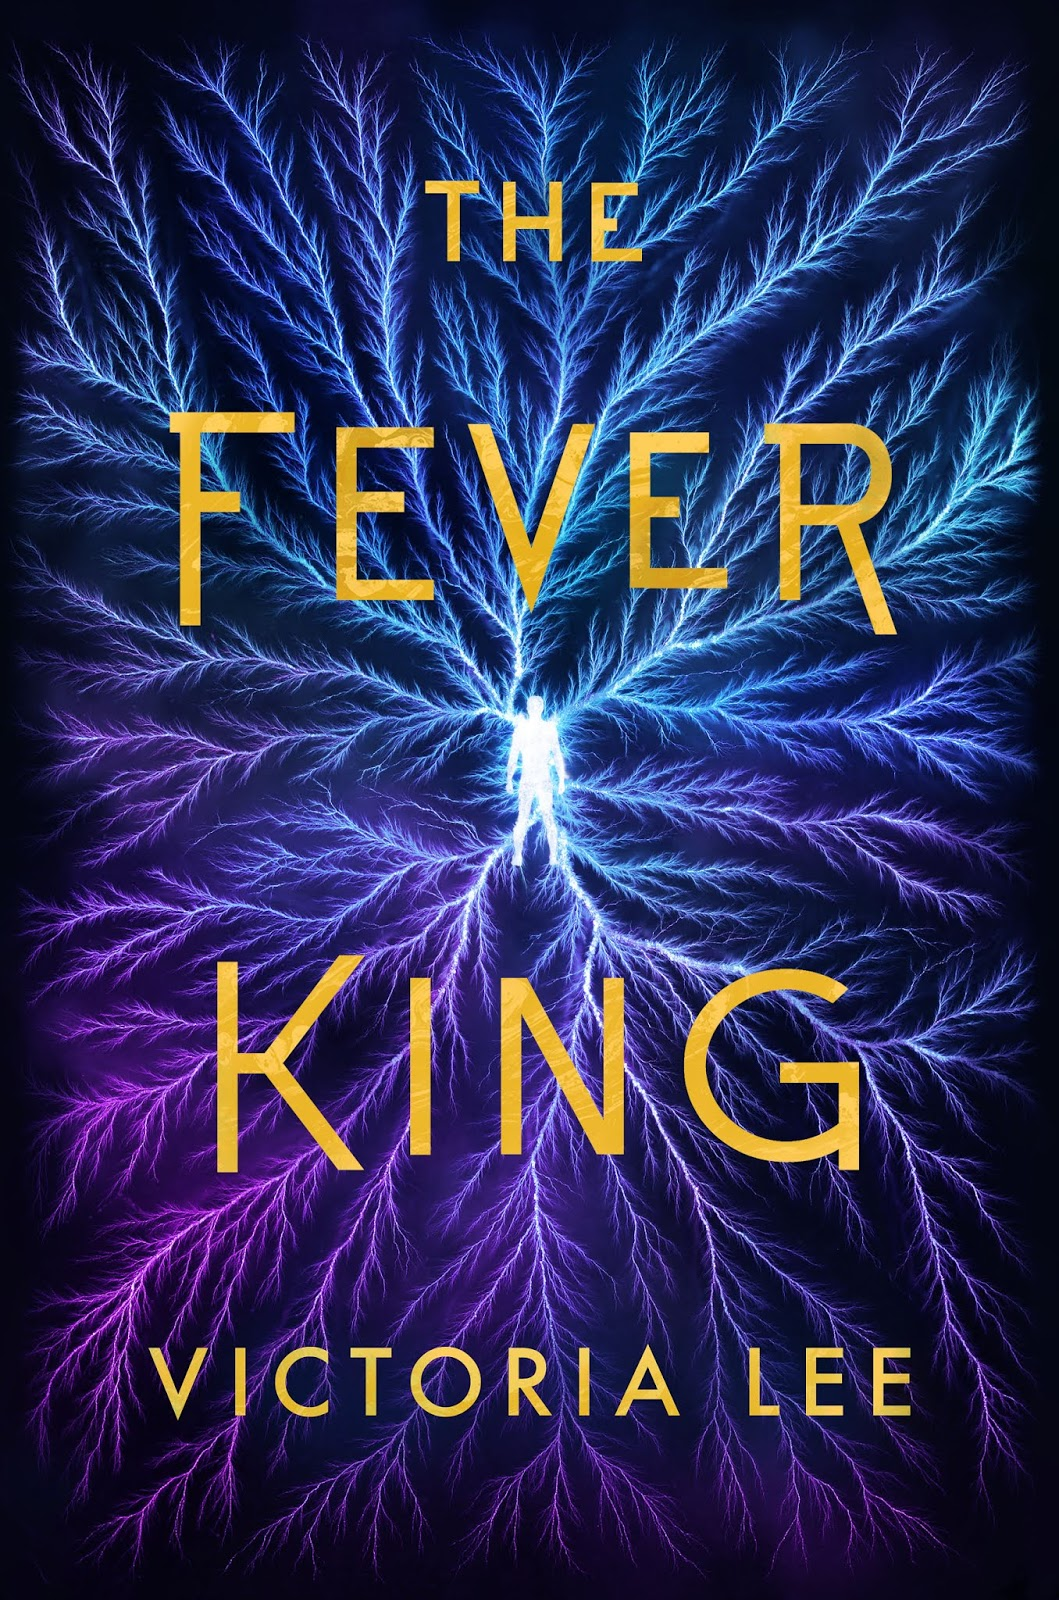 Blog Tour & Giveaway: The Fever King by Victoria Lee